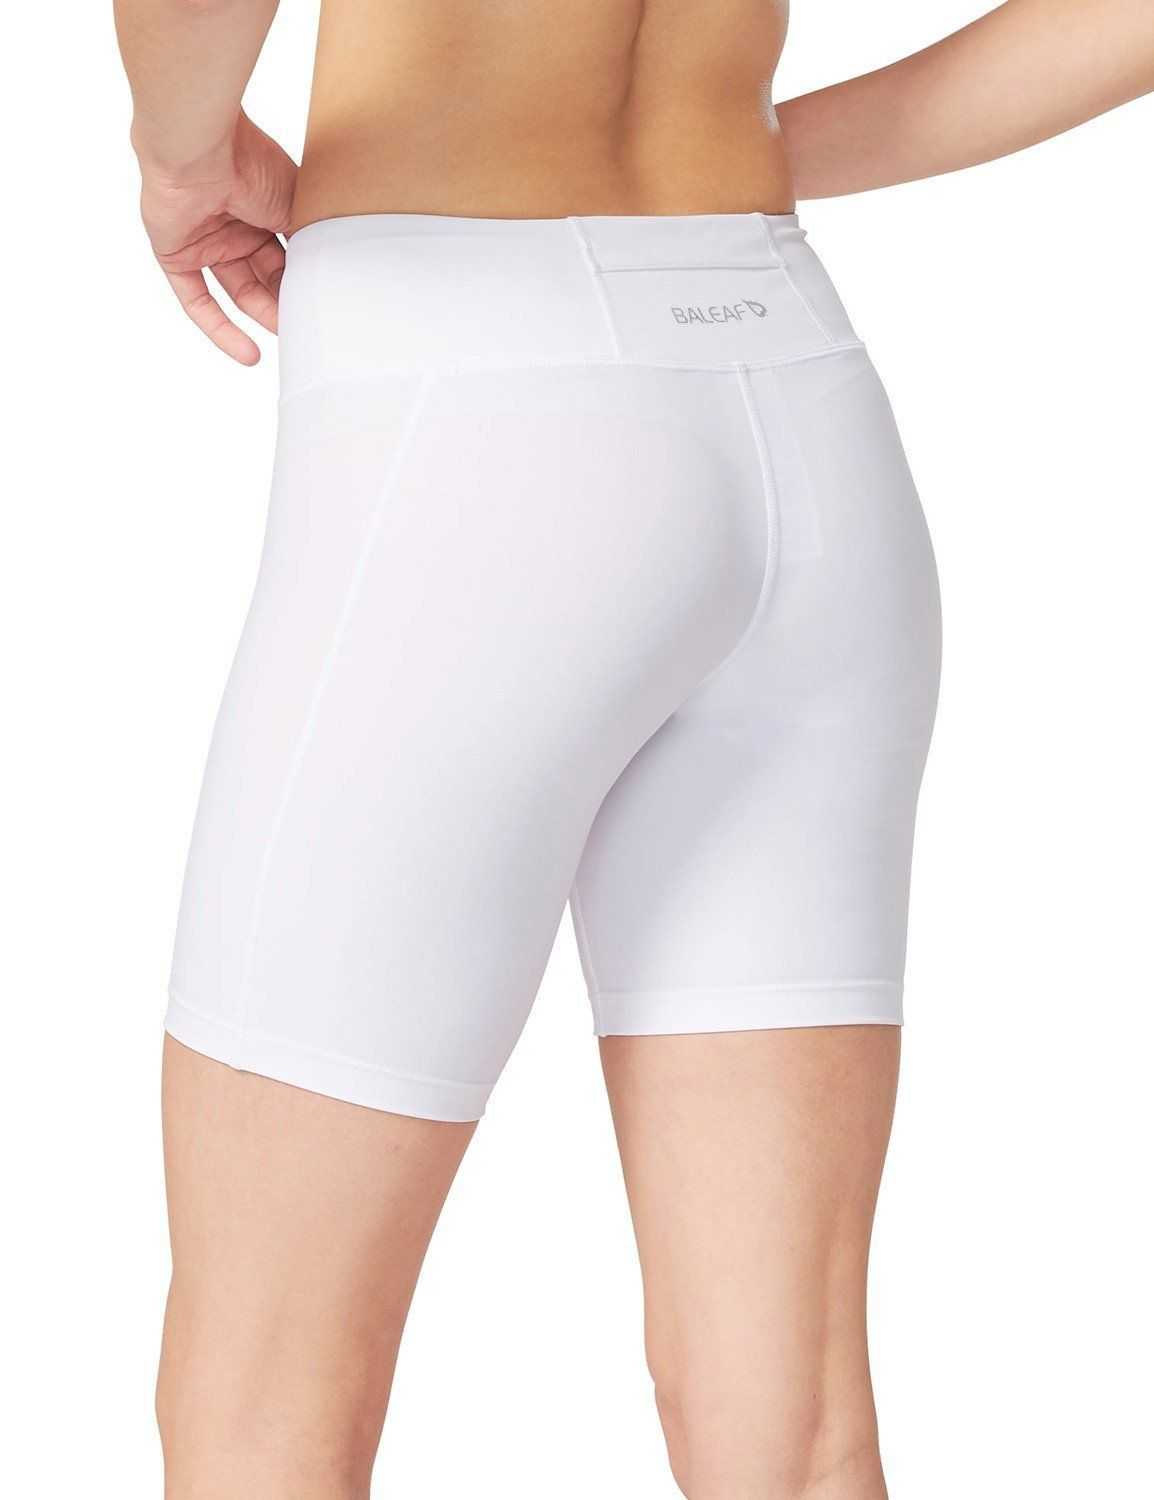 9707377660220 Baleaf Women's 7' Active Fitness Pocket Running Shorts *** Check out ...